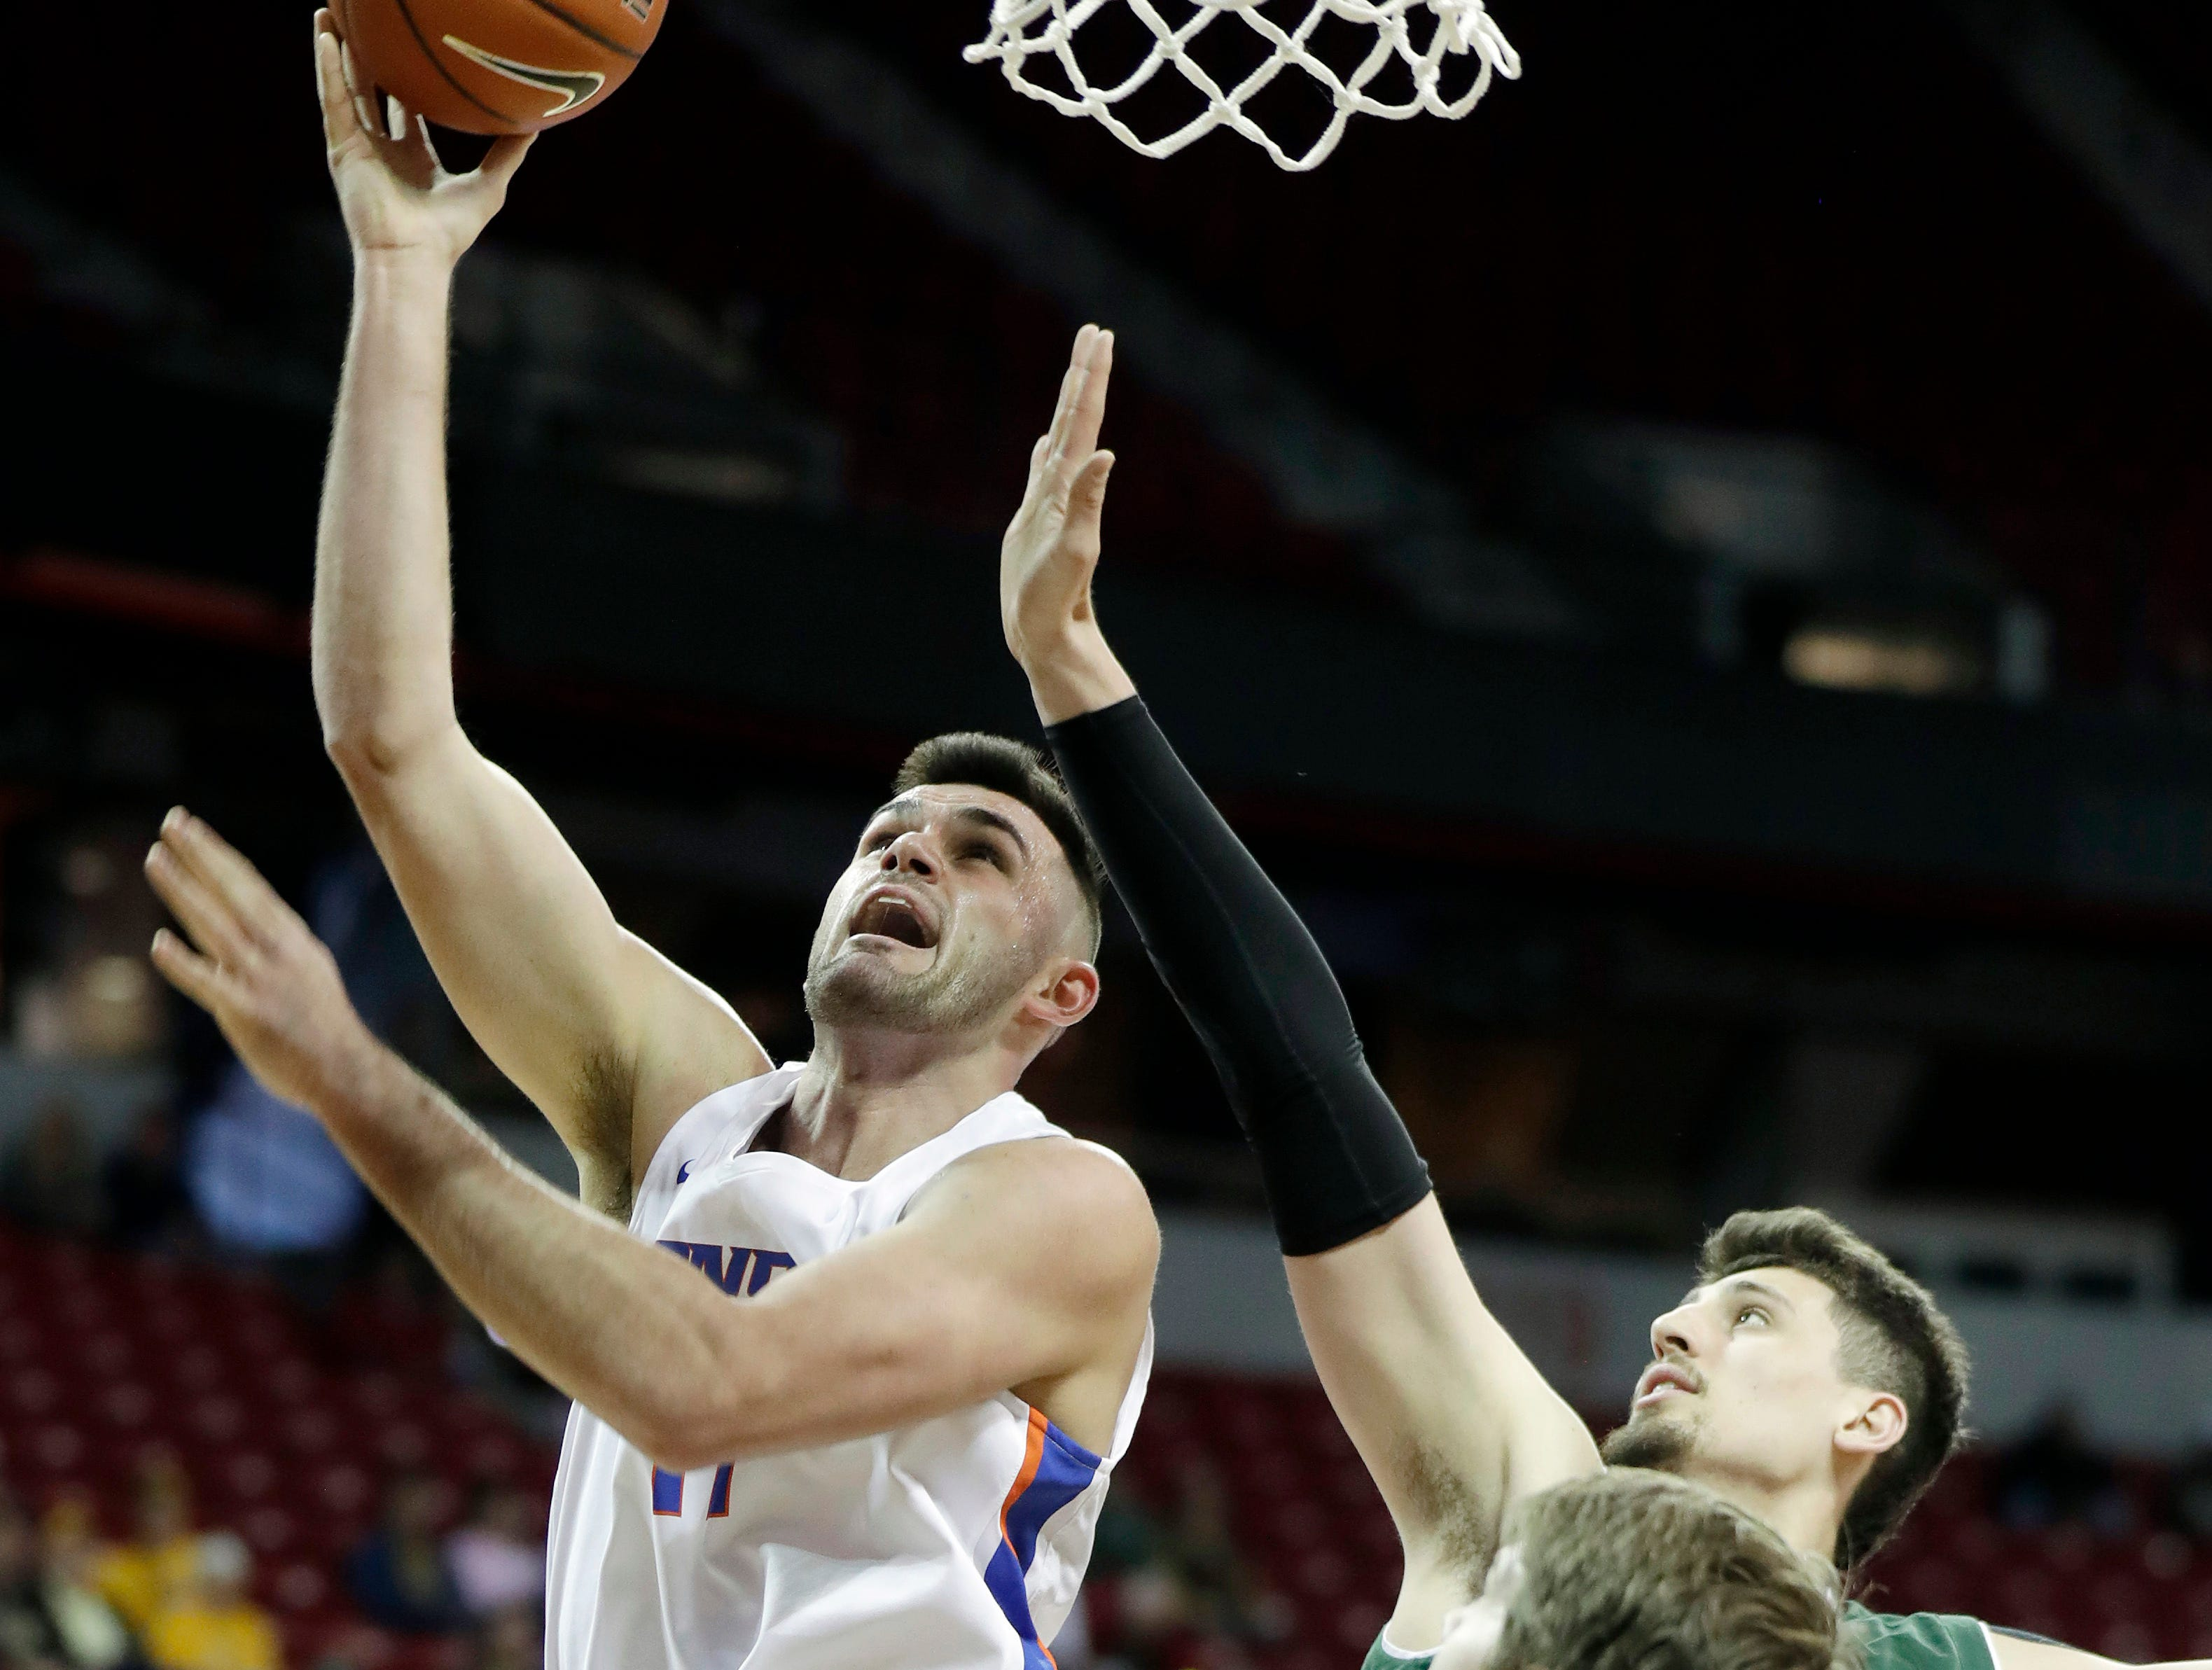 Colorado State's Nico Carvacho defends as Boise State's Zach Haney, left, shoots during the first half of an NCAA college basketball game in the Mountain West Conference tournament Wednesday, March 13, 2019, in Las Vegas.